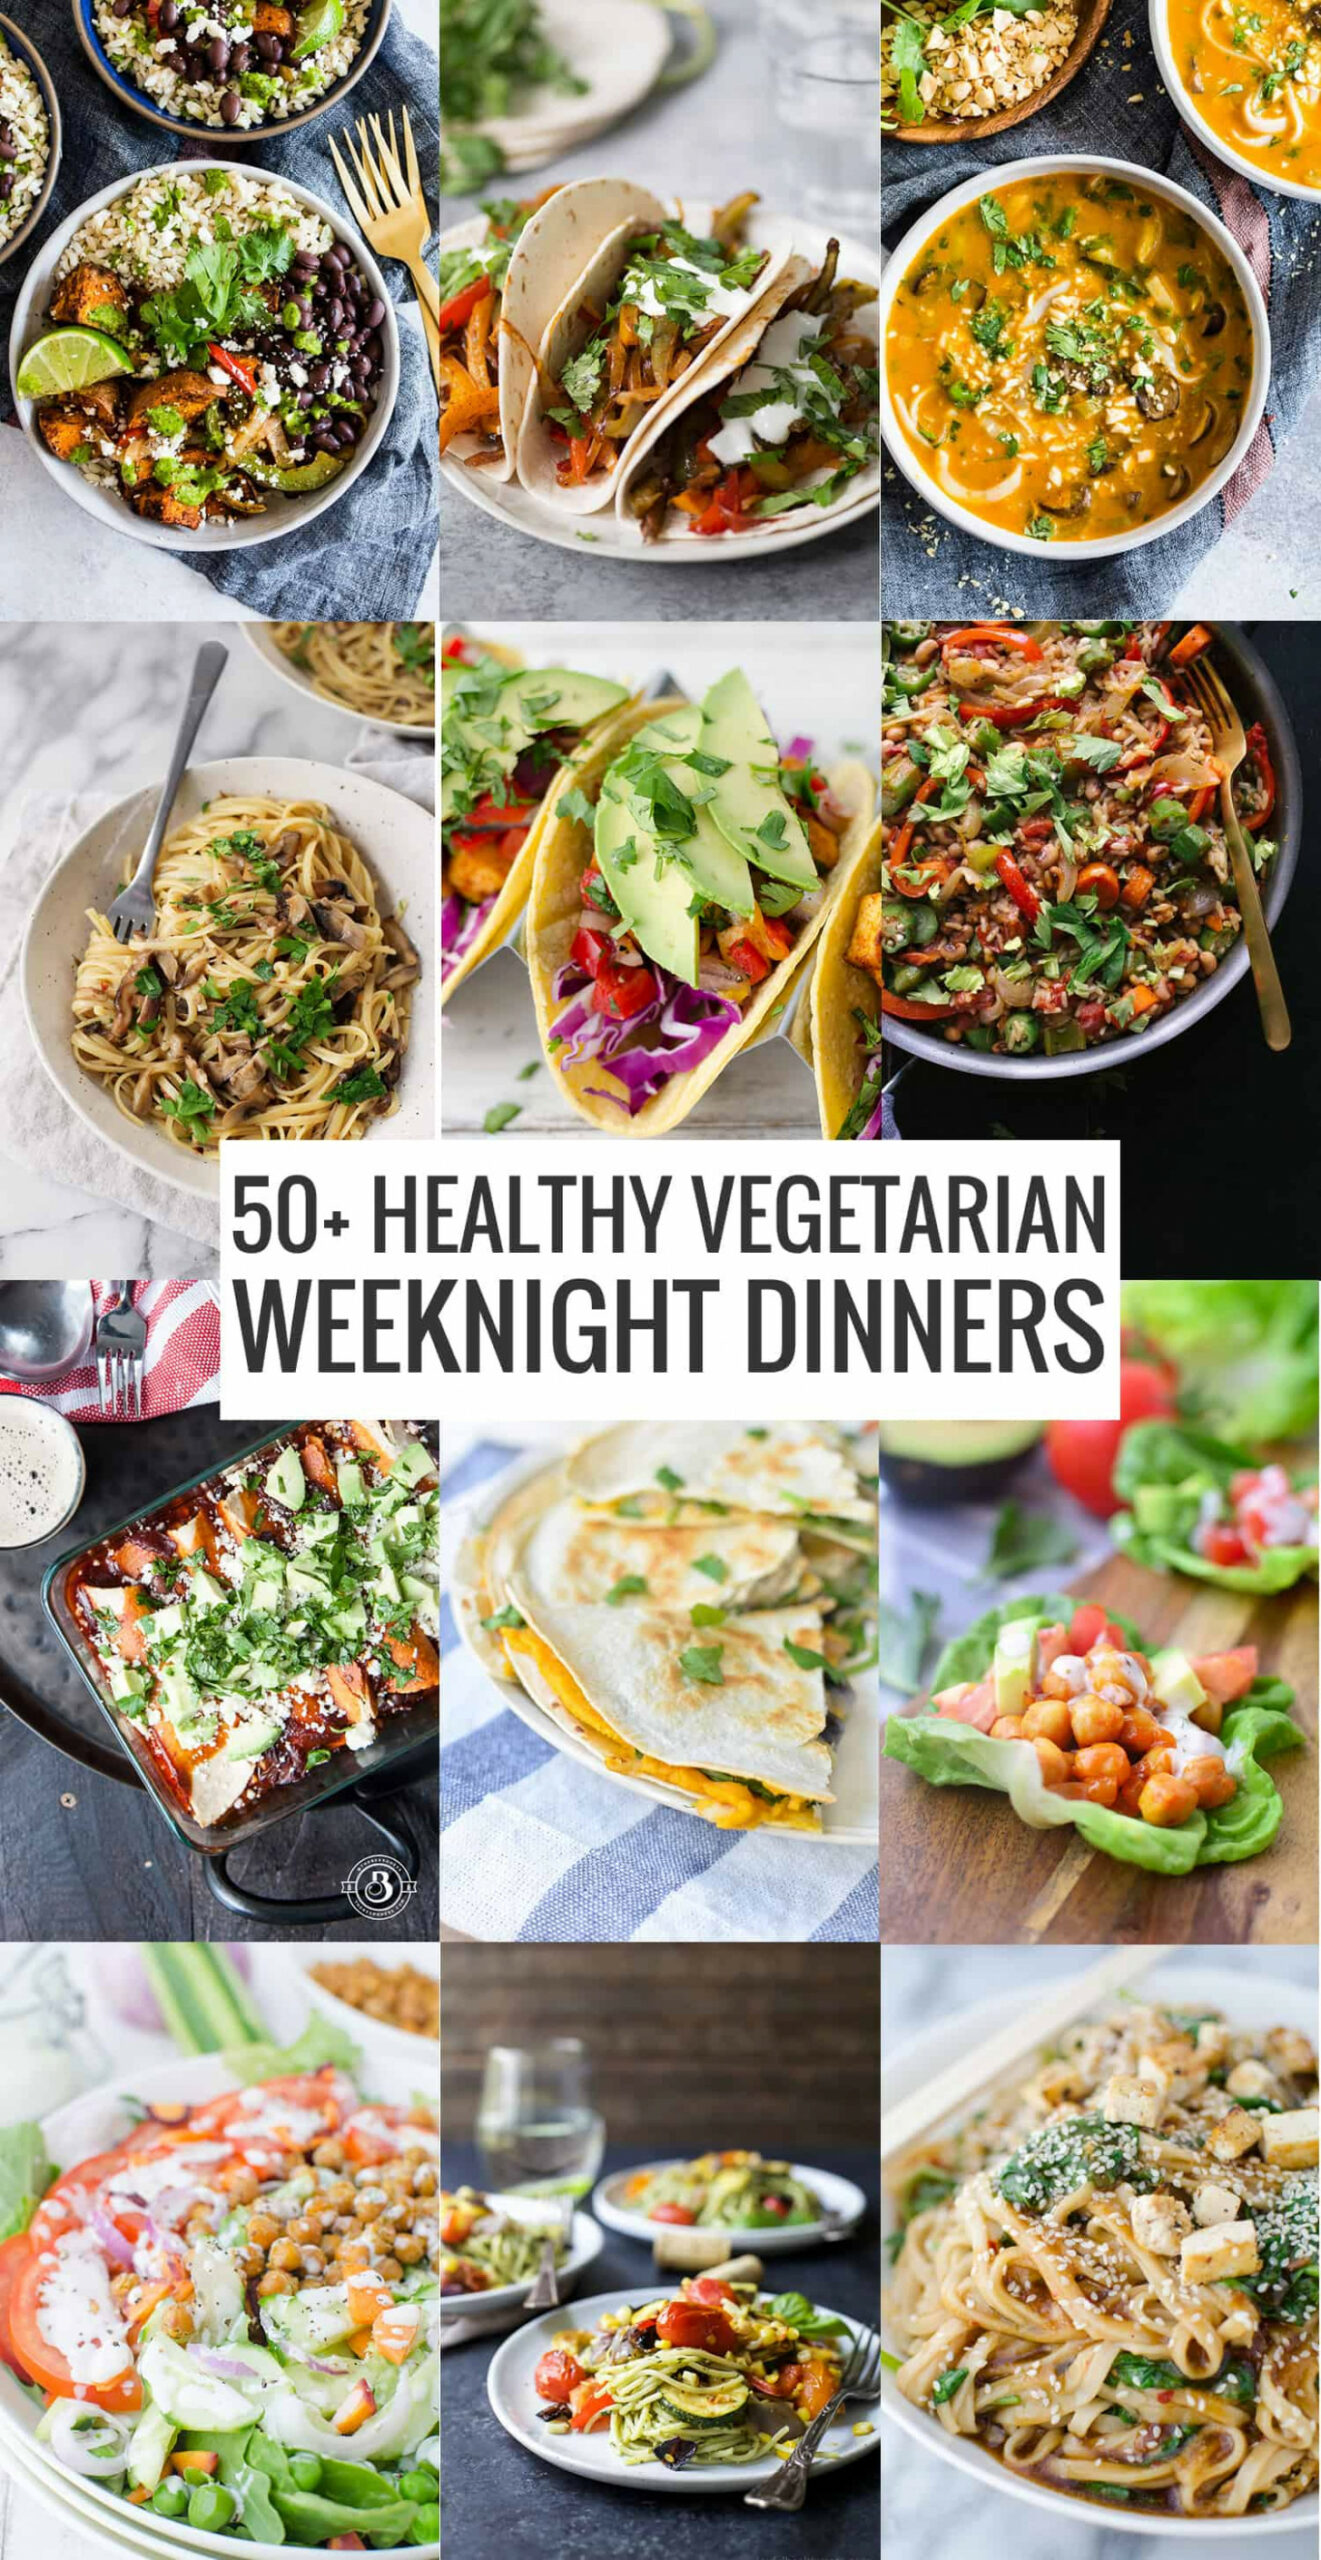 12+ Healthy Vegetarian Meals - Delish Knowledge - recipes dinner healthy